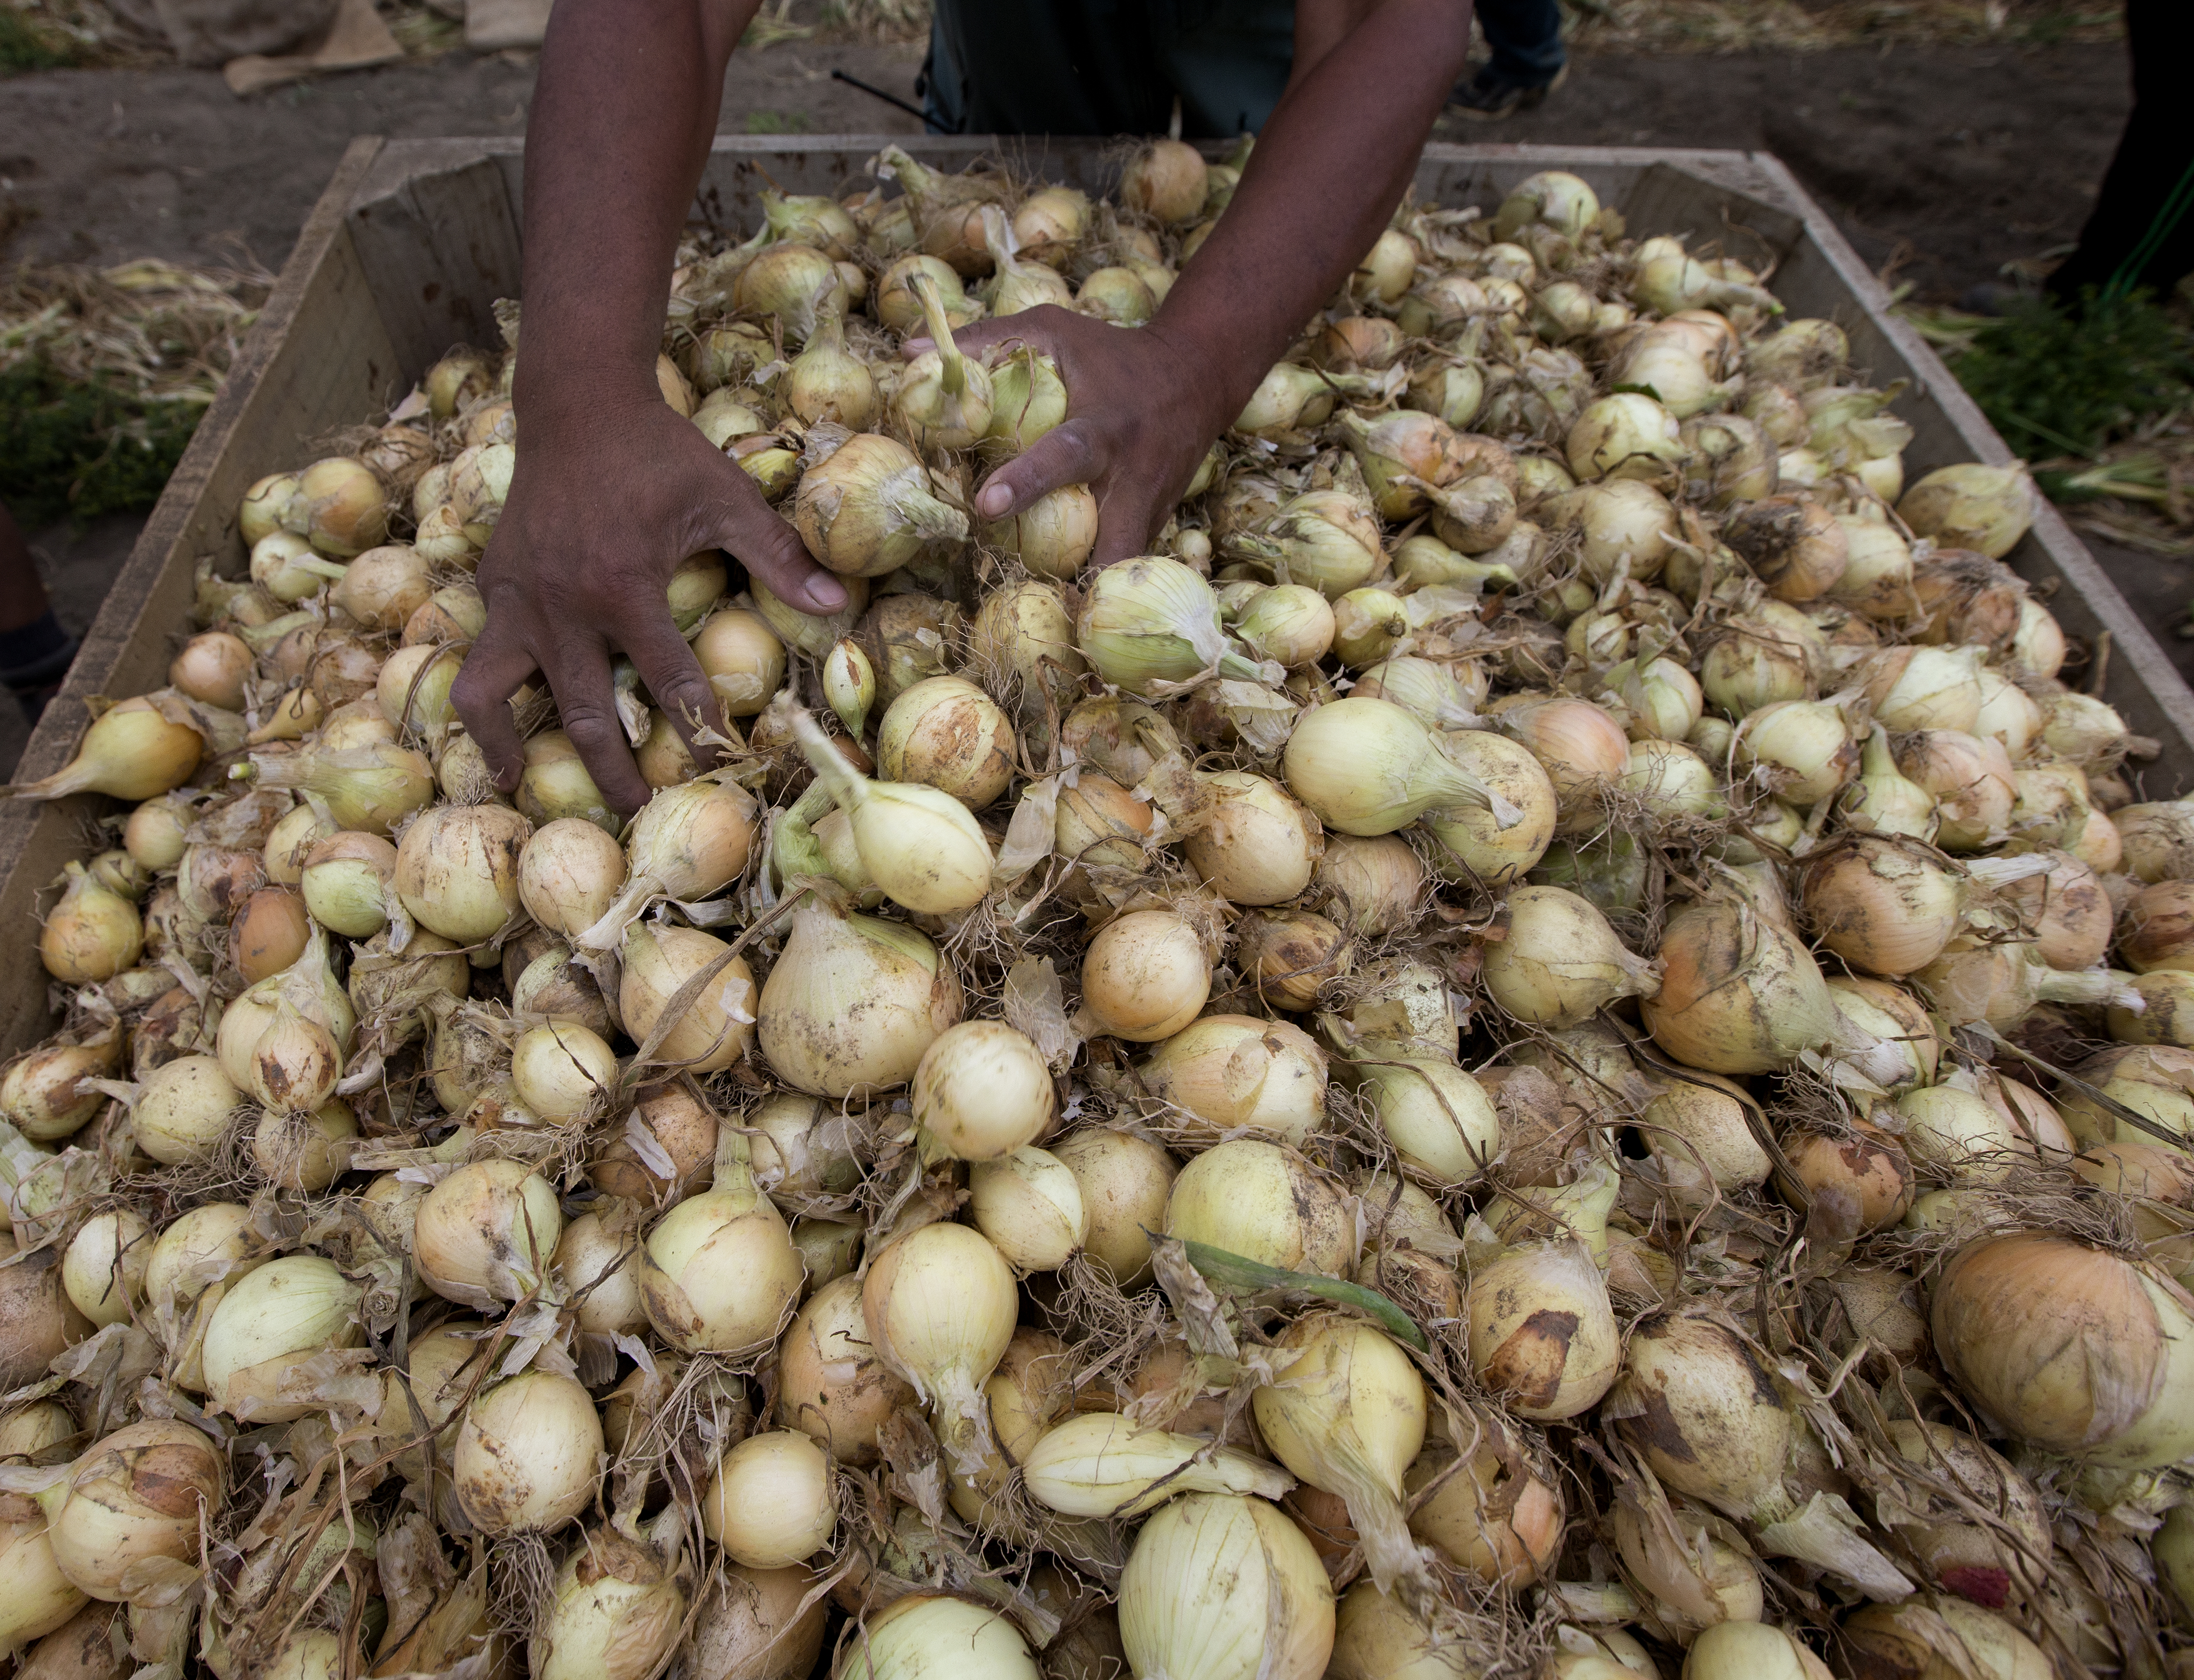 NZ onion growers look to better season after export slide last year